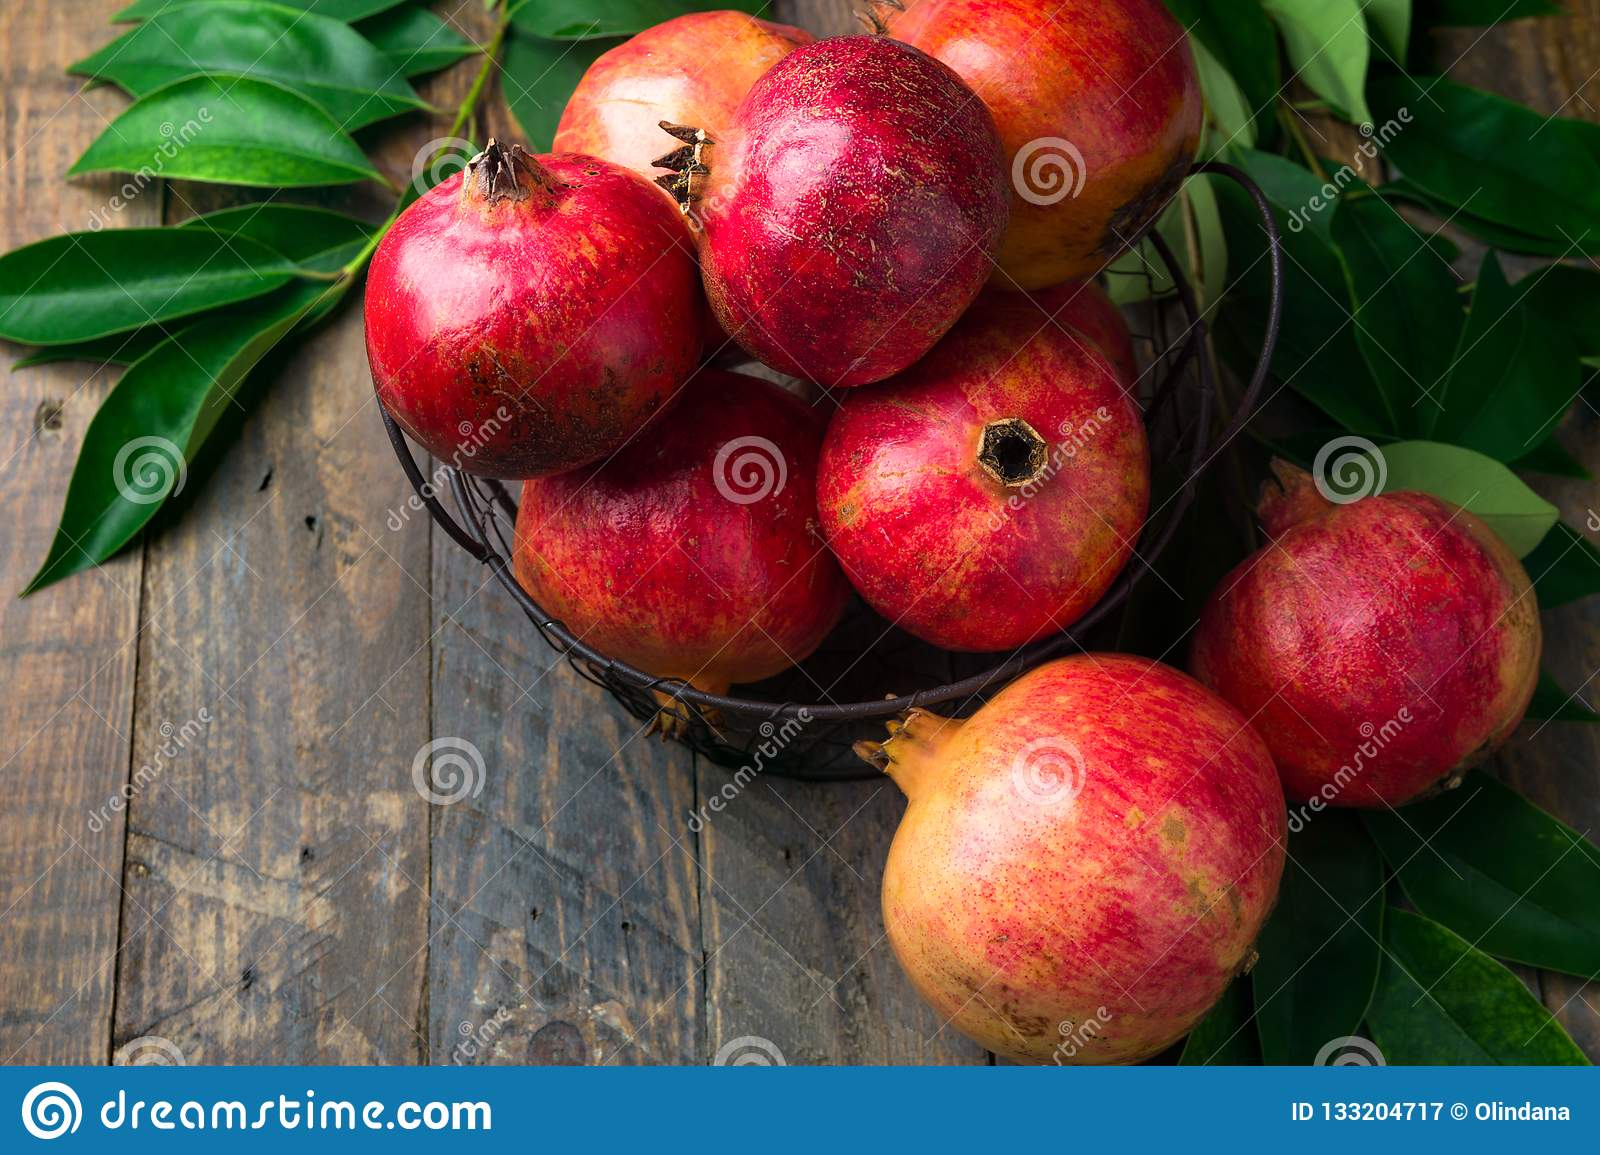 Ripe juicy organic bright red pomegranates in metal wicker basket with branches green leaves on plank barn wood background